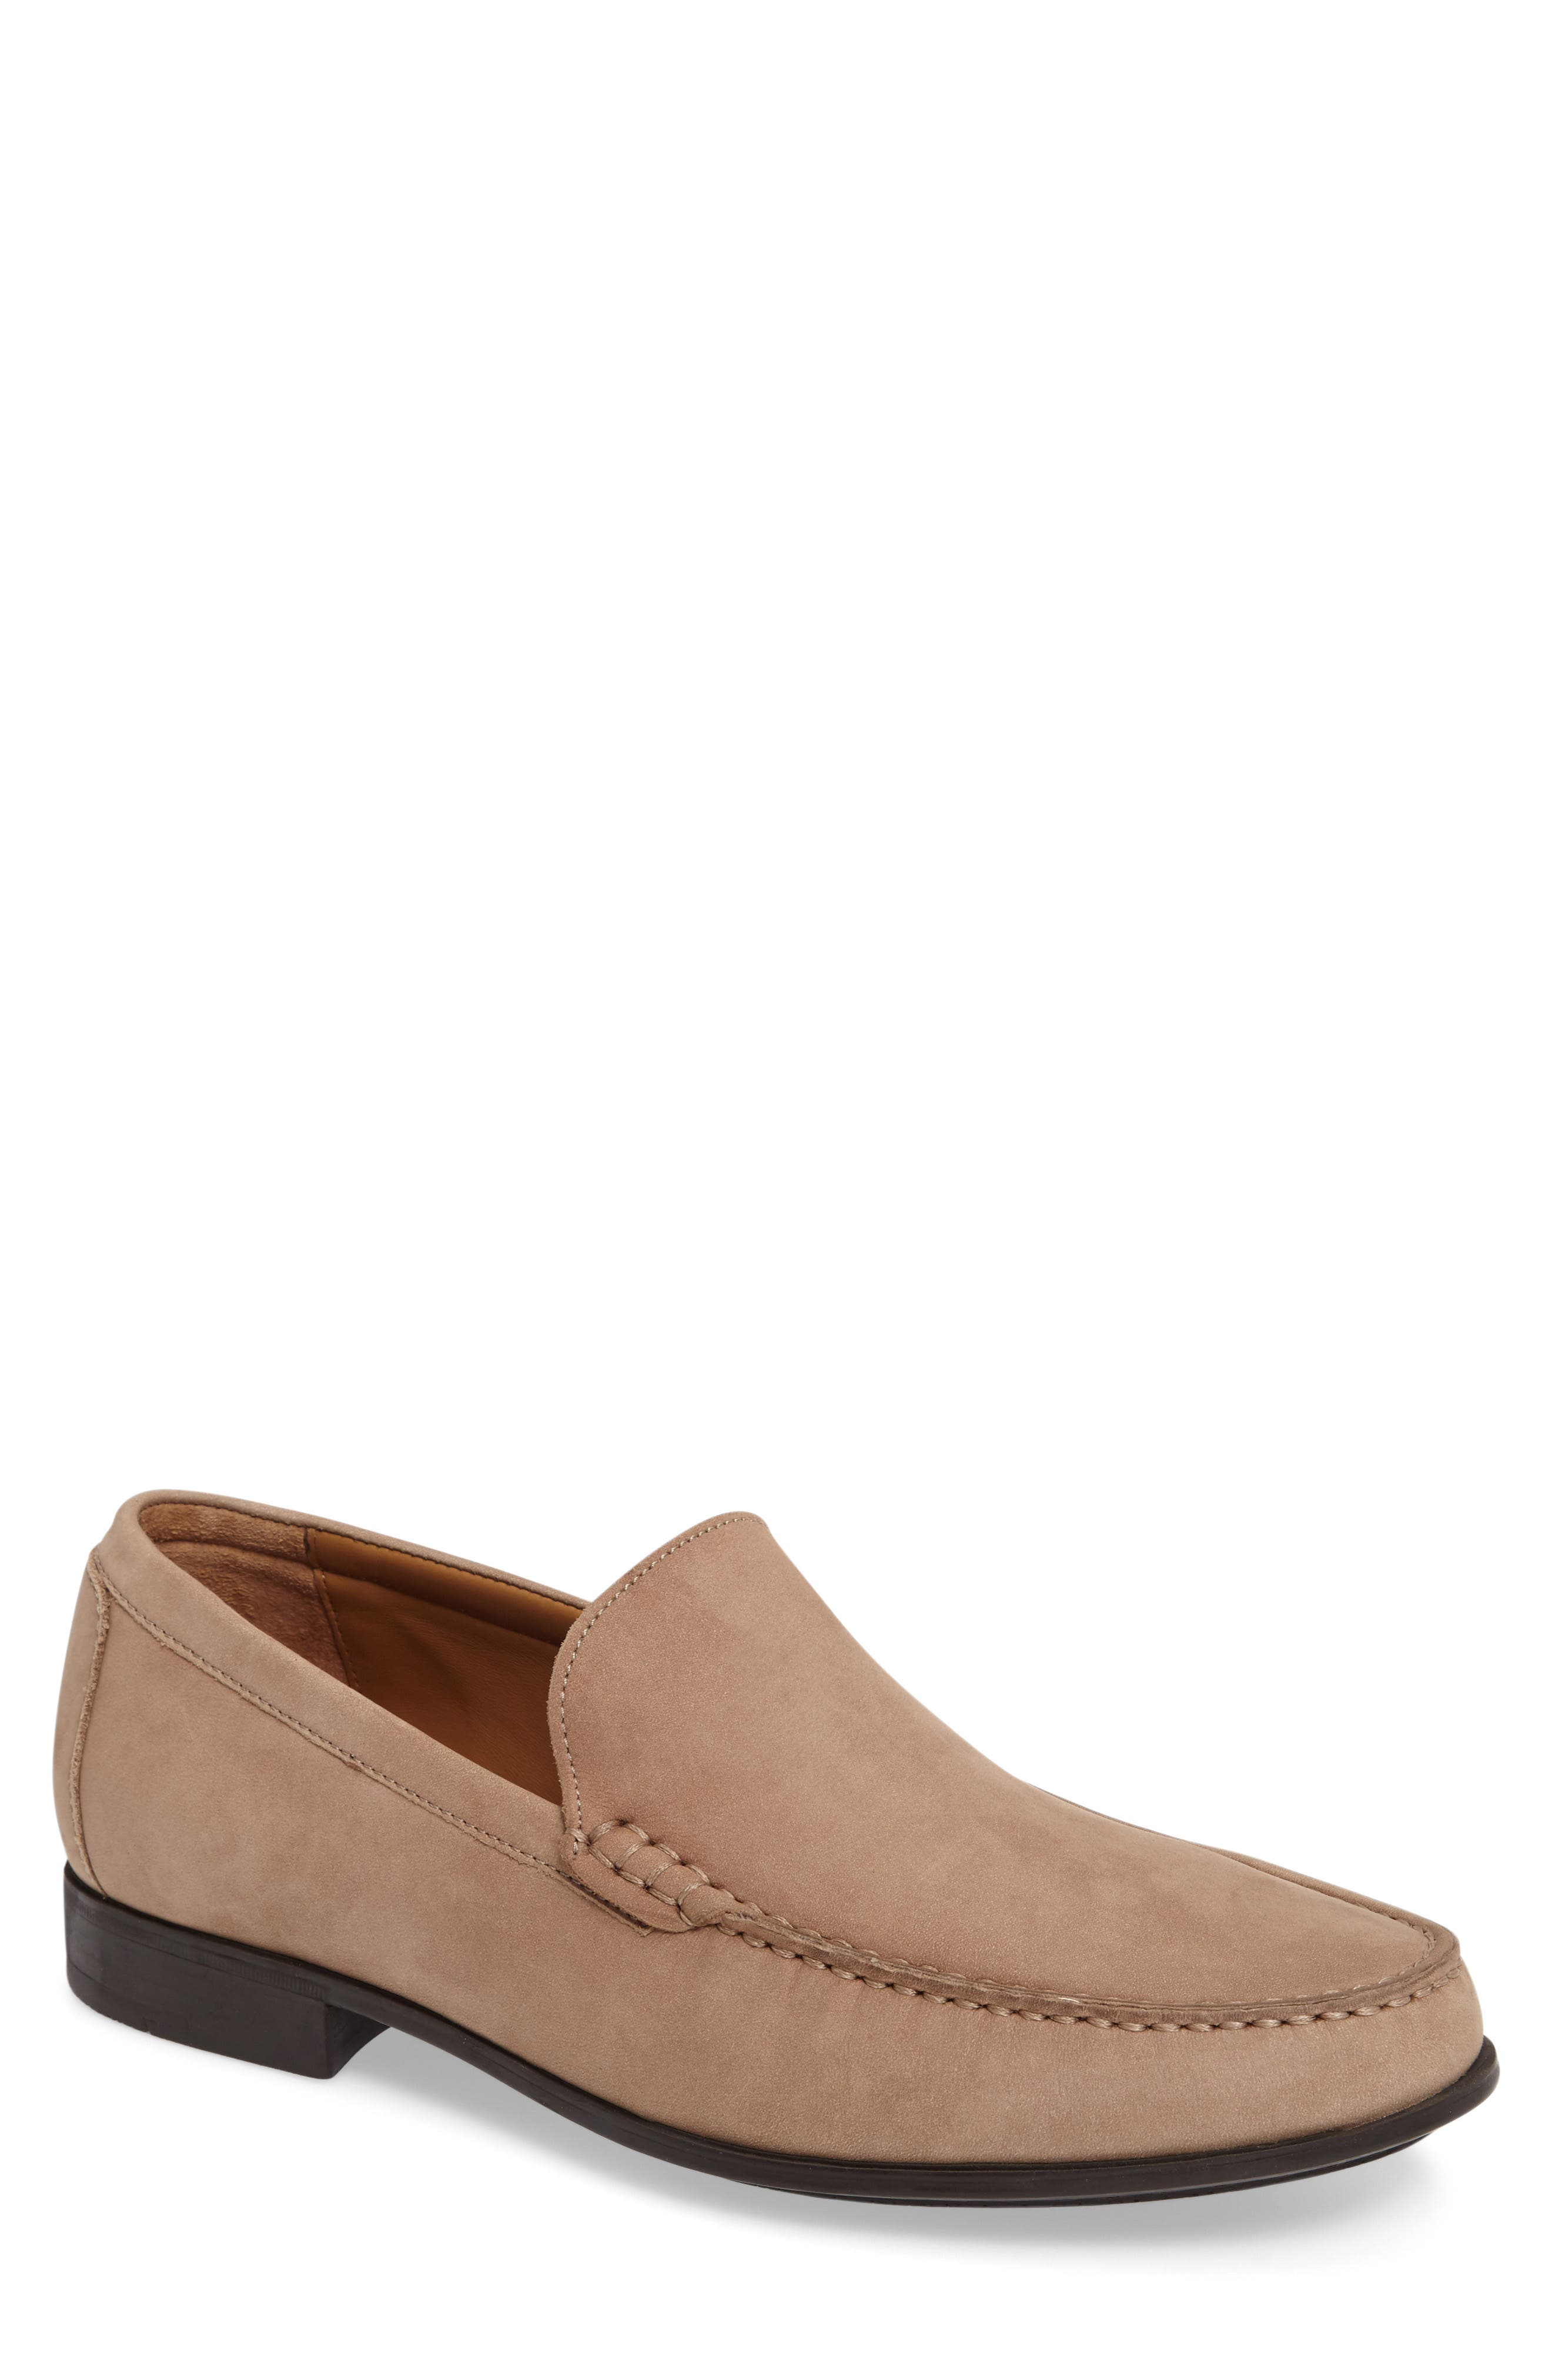 Cresswell Venetian Loafer,                         Main,                         color, Sand Nubuck Leather